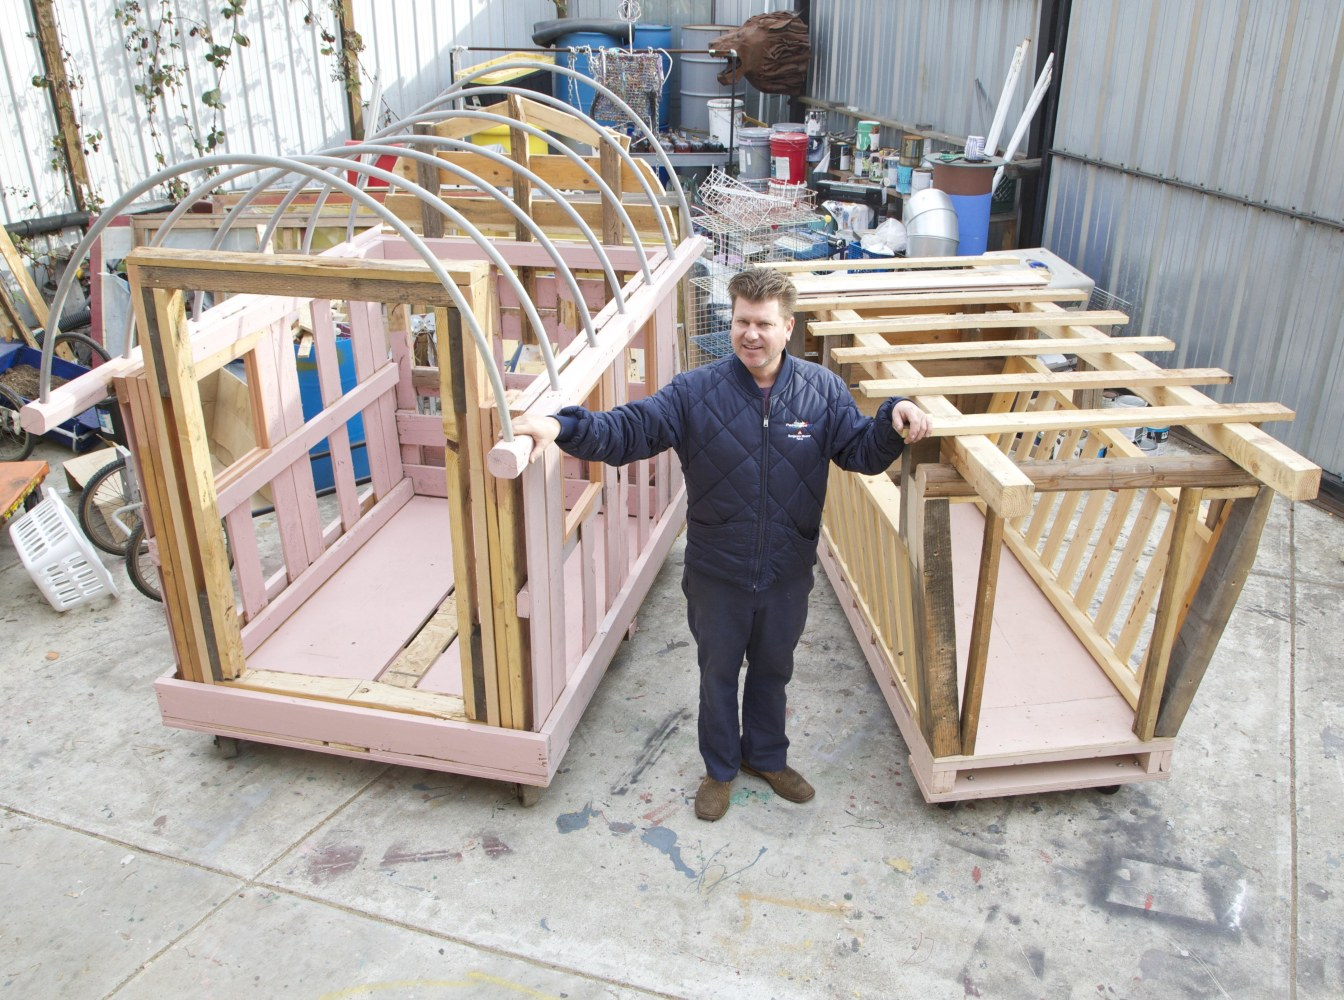 California Artist Gregory Kloehn, Who Builds Small Portable Homes Using  Salvaged Materials, Says An